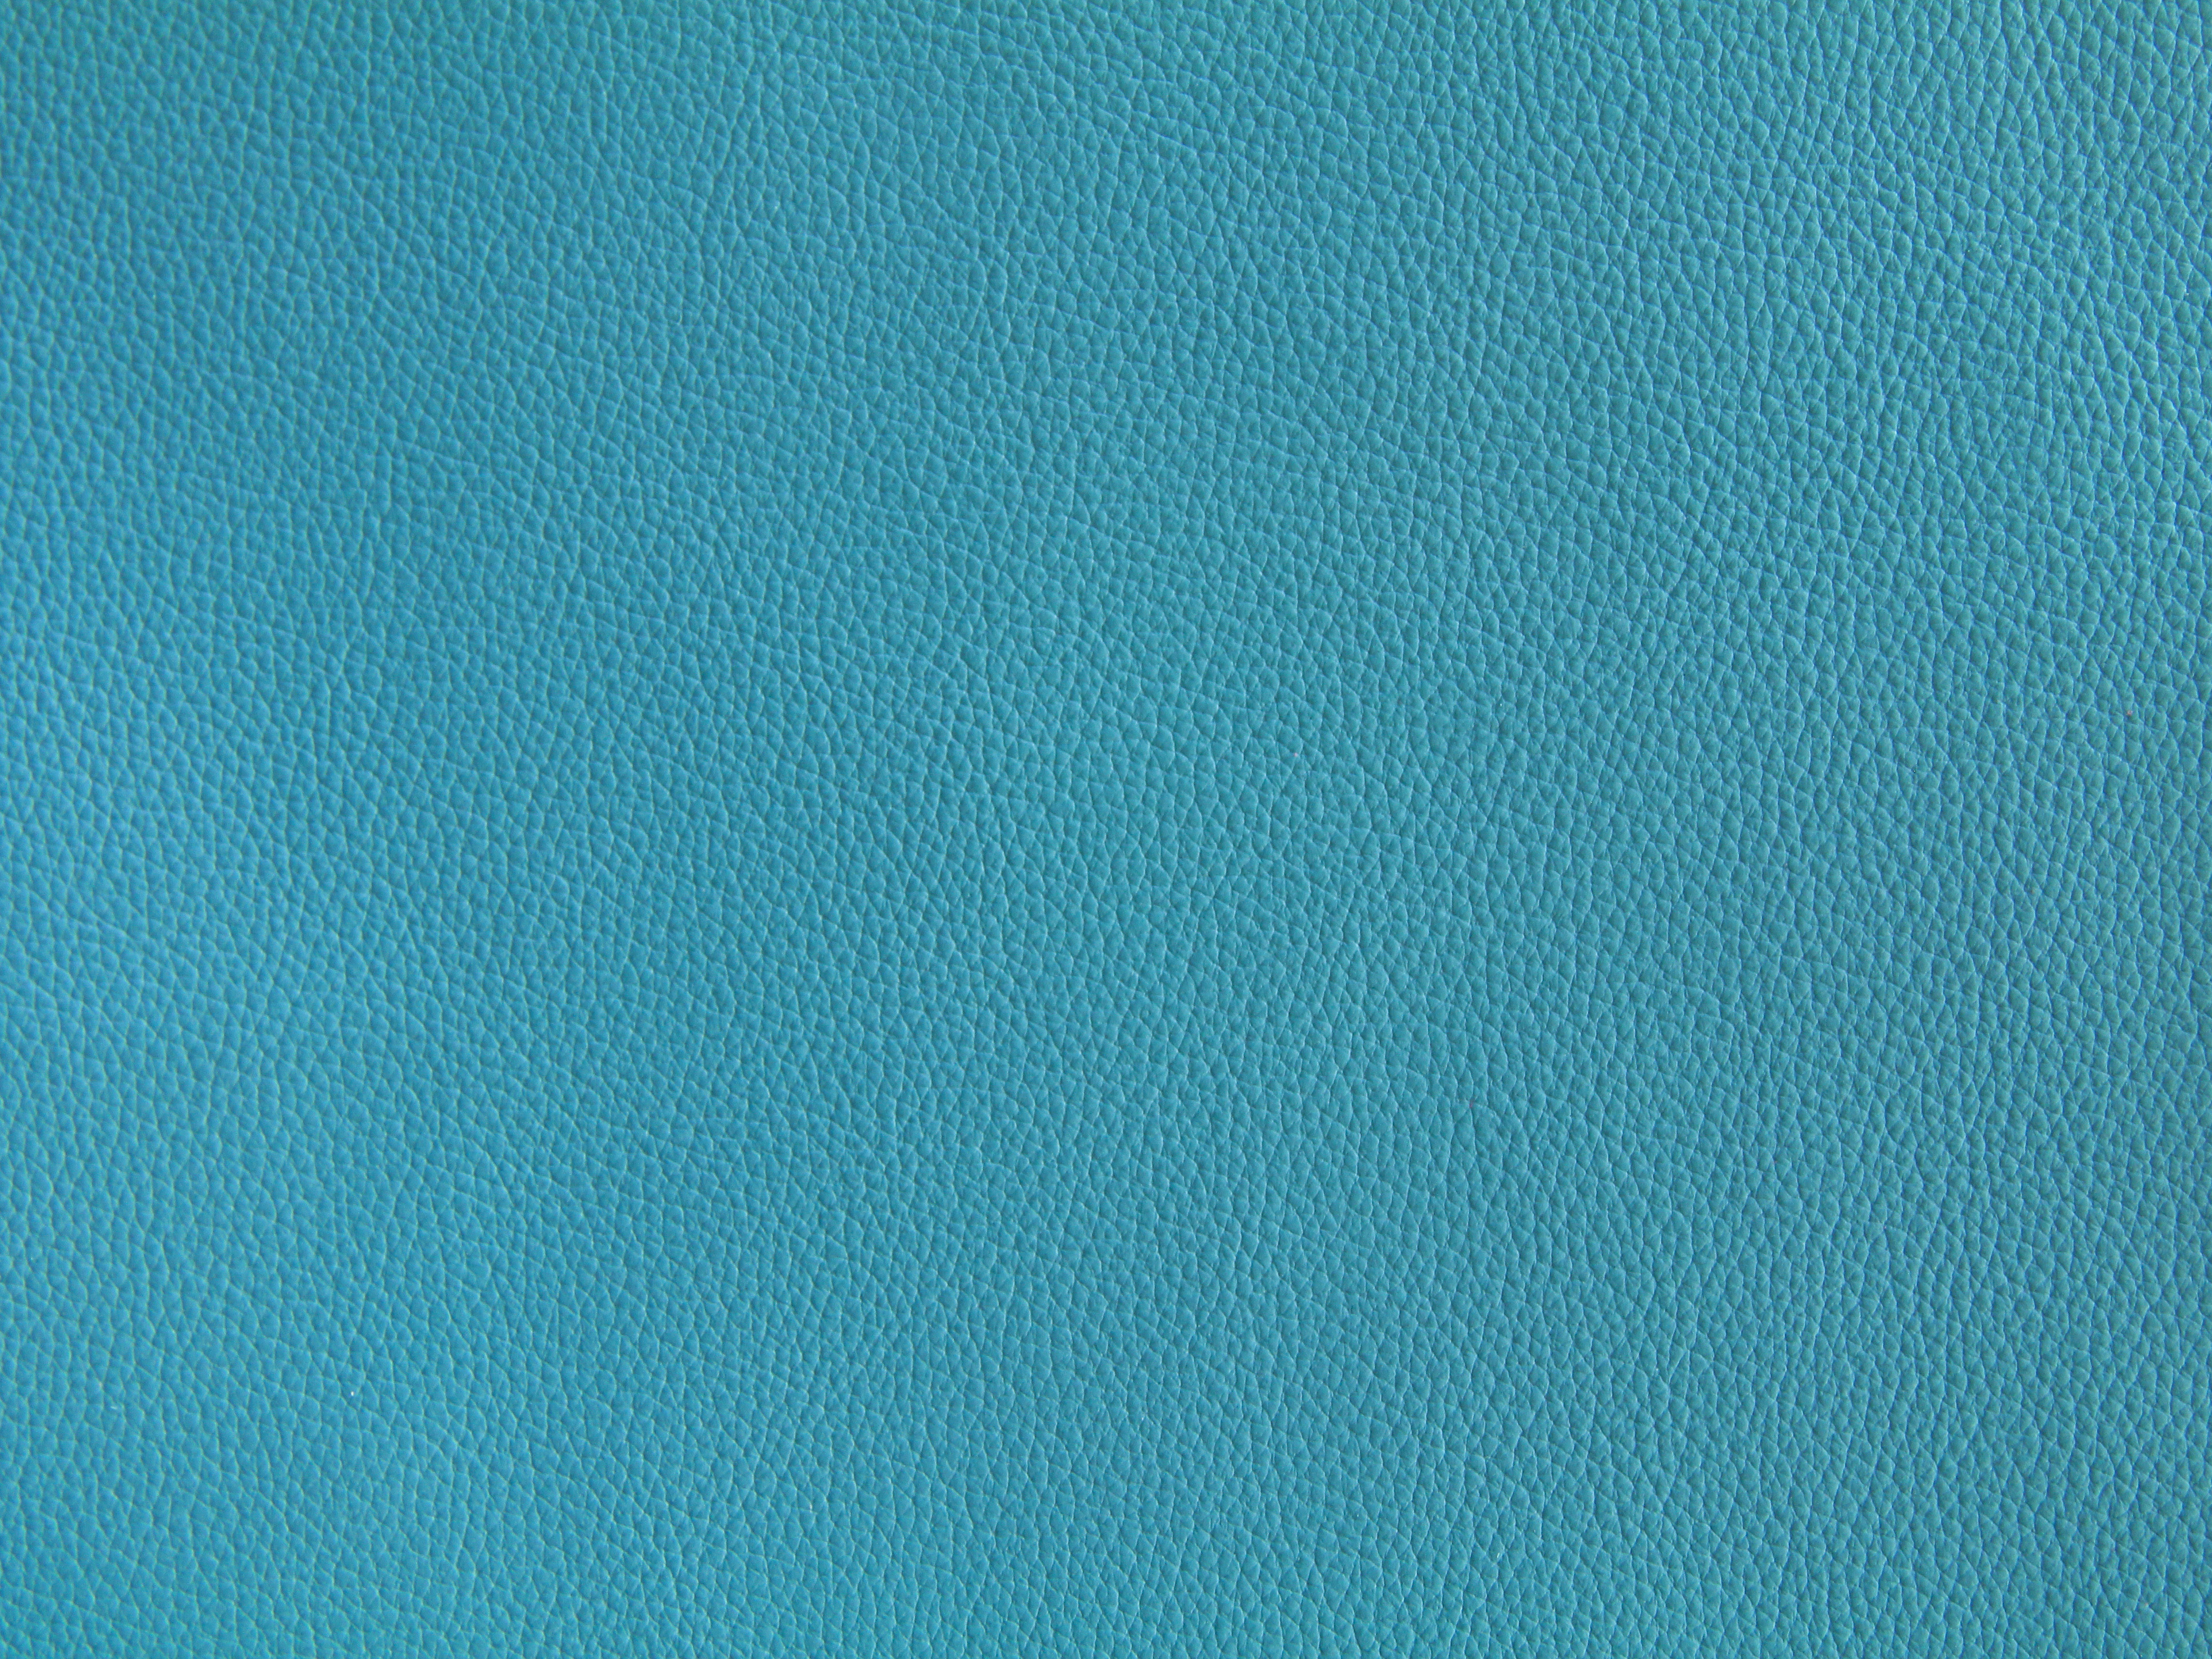 Teal Leather Texture Bright Blue Design Fabric Stock Photo